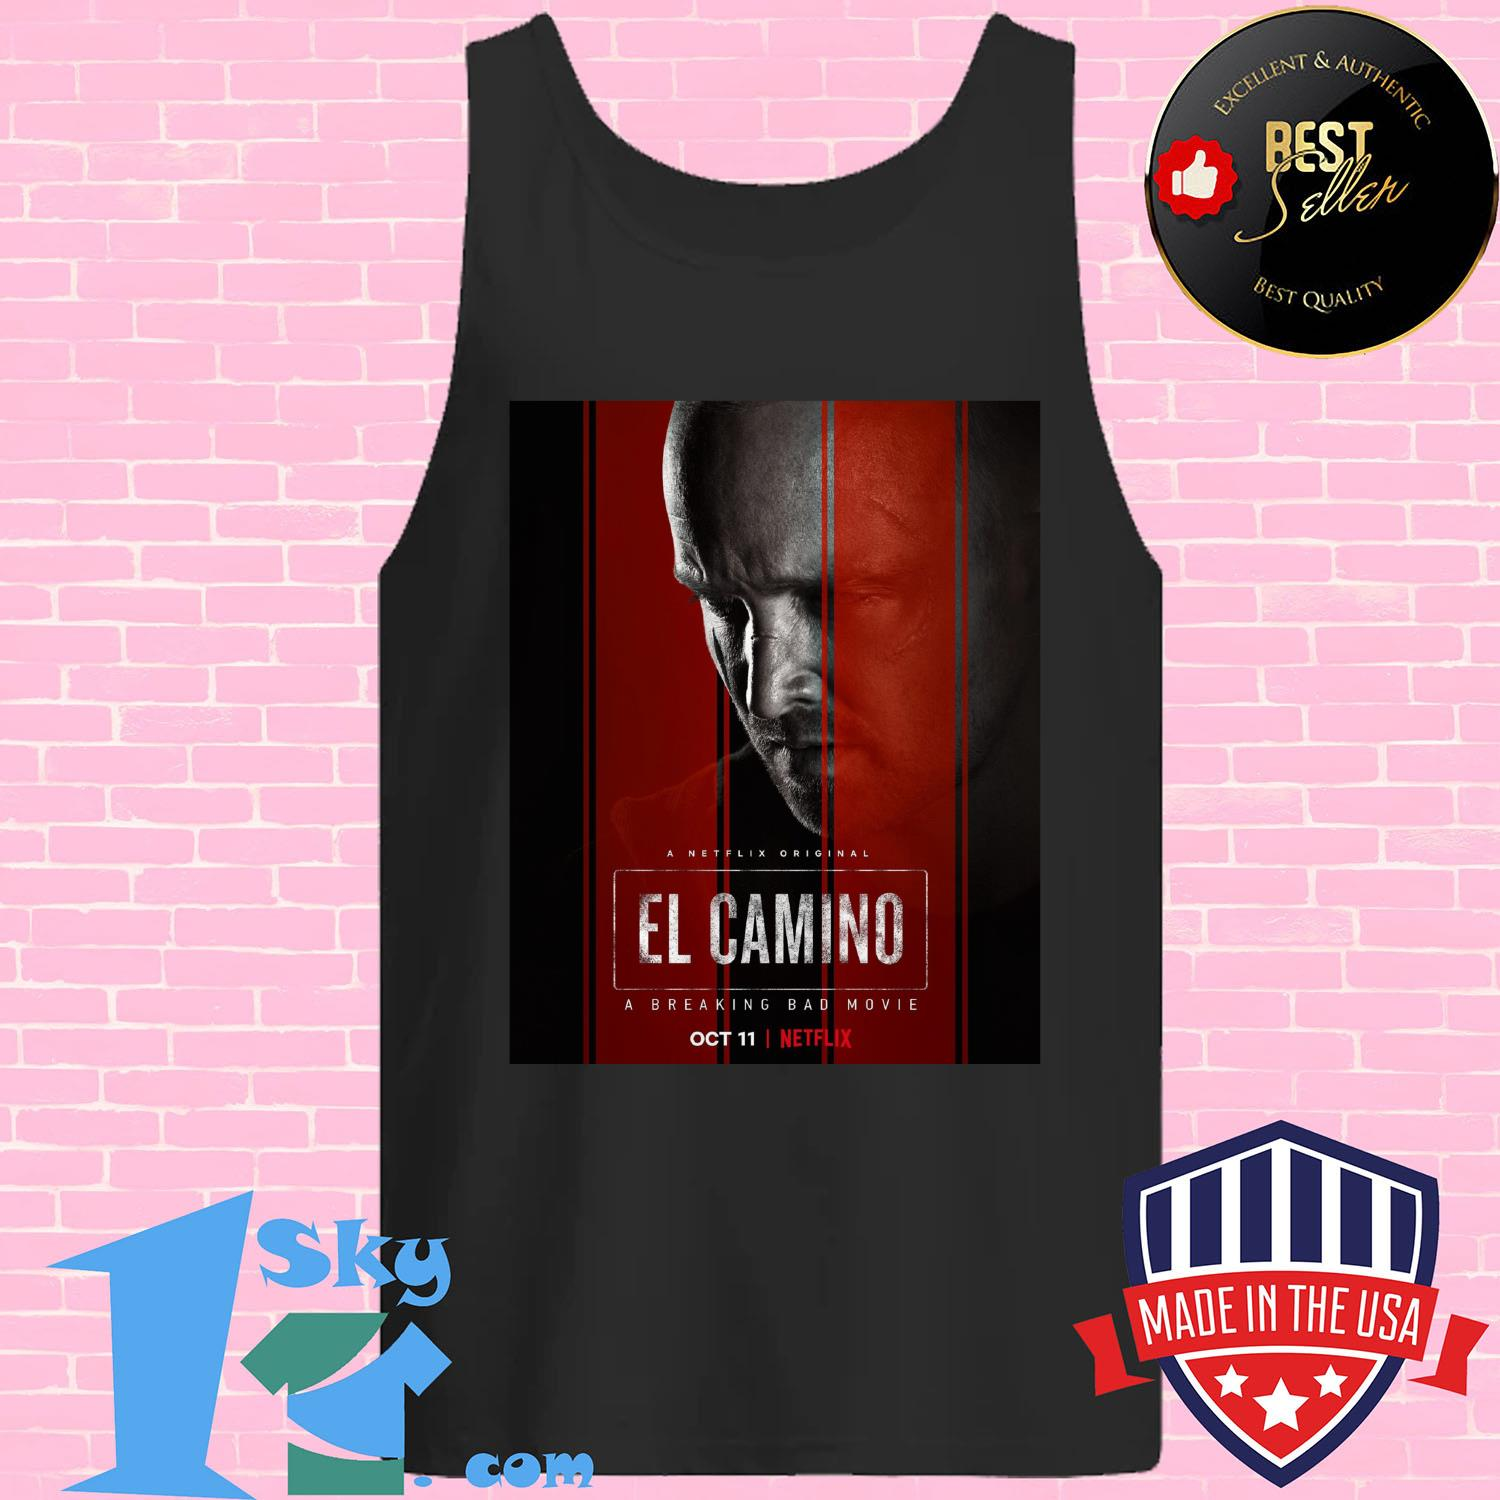 el camino a breaking bad movie 11 october 2019 tank top - EL Camino a Breaking Bad movie 11 October 2019 shirt